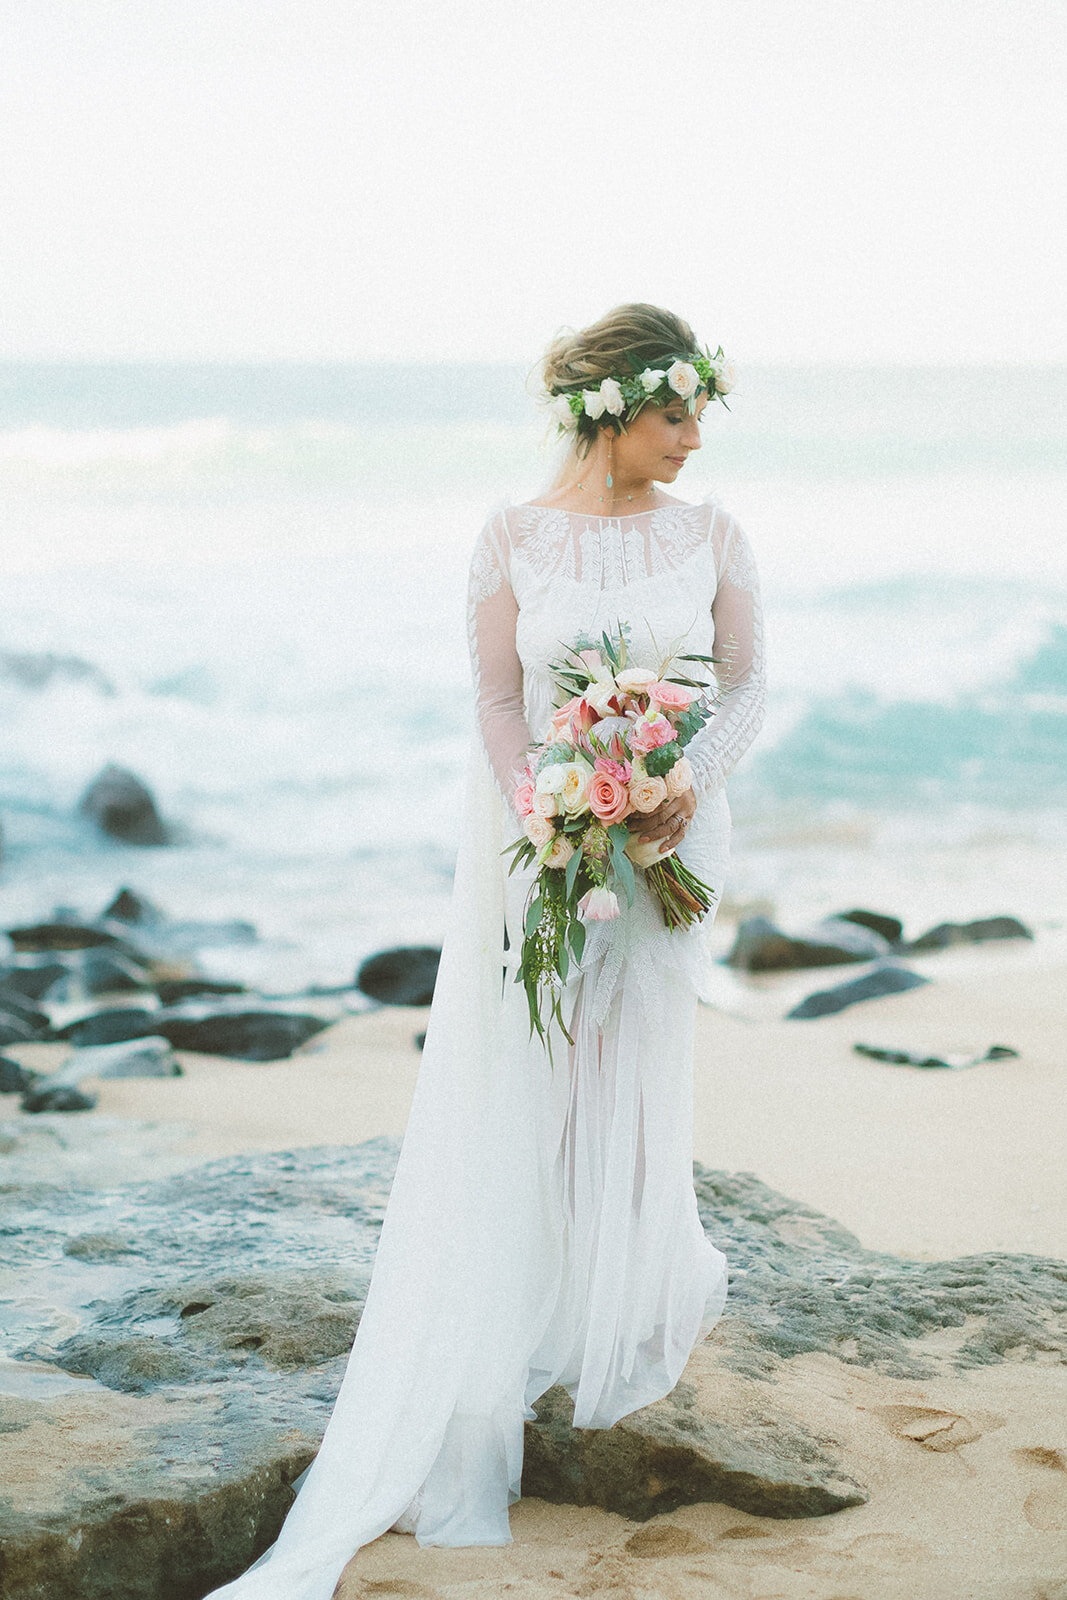 Maui wedding photographer20181126_0011.jpg